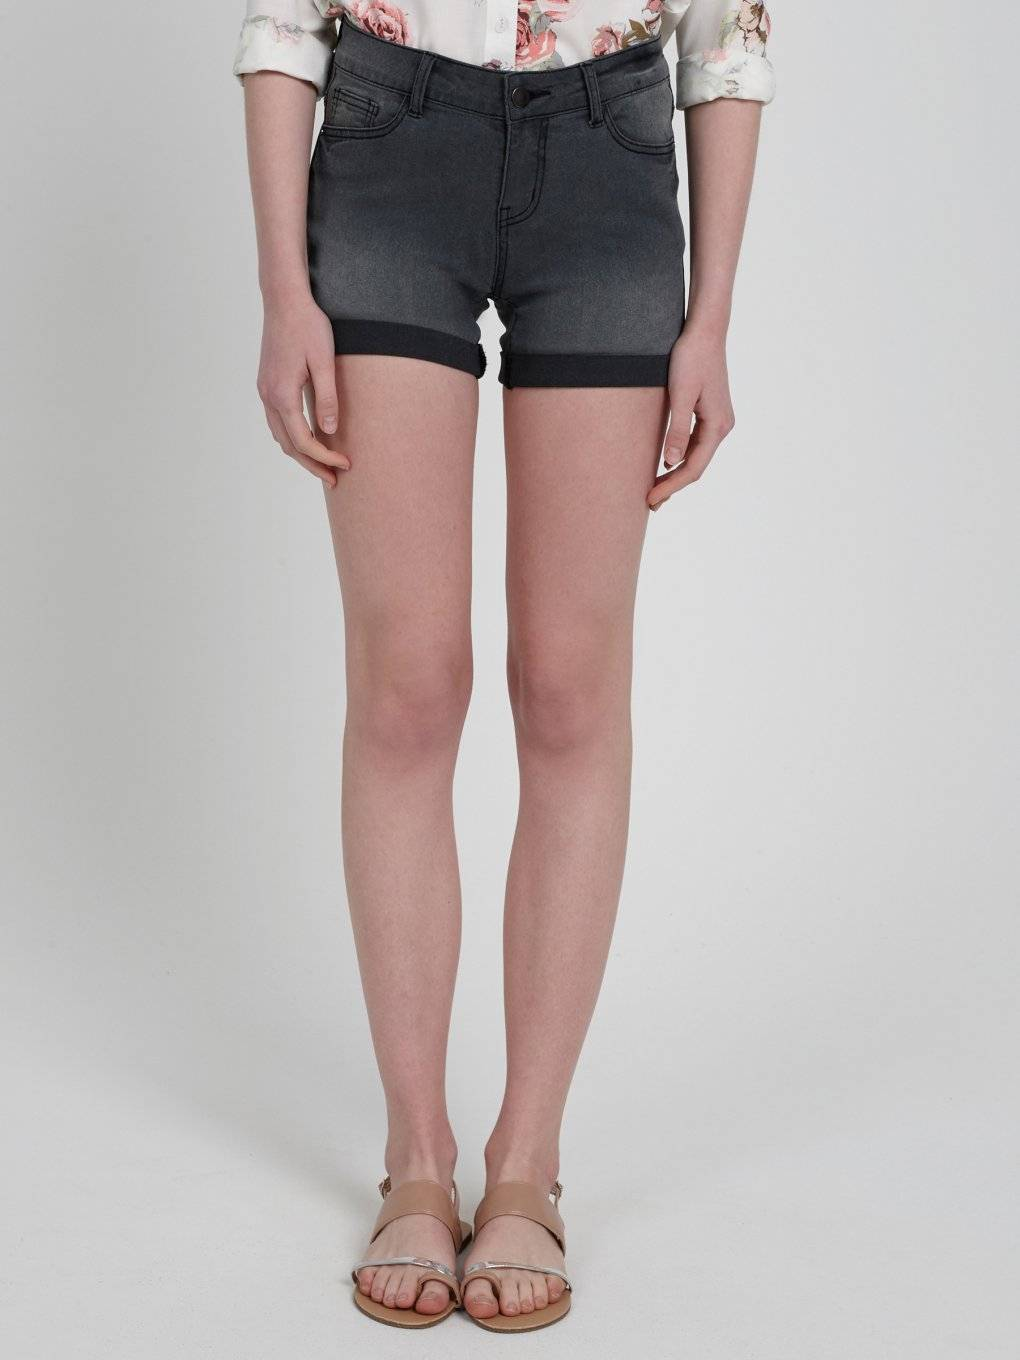 DENIM SHORTS IN DARK GREY WASH